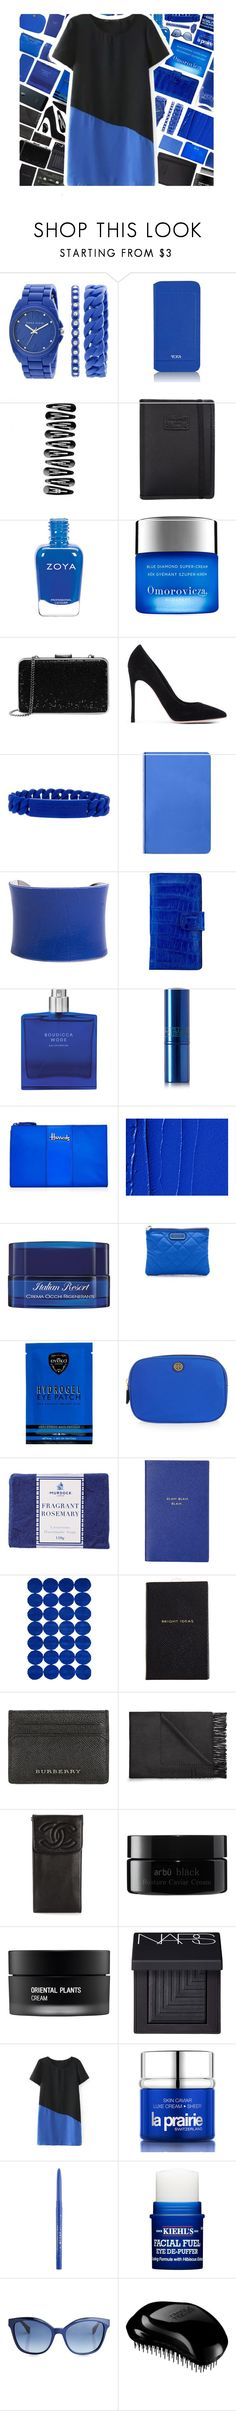 """""""Box Clutch"""" by xgracieeee ❤ liked on Polyvore featuring Anne Klein, Tumi, Nava, Omorovicza, Michael Kors, Gianvito Rossi, Marc by Marc Jacobs, Nuuna, UNEARTHED and Lipstick Queen"""